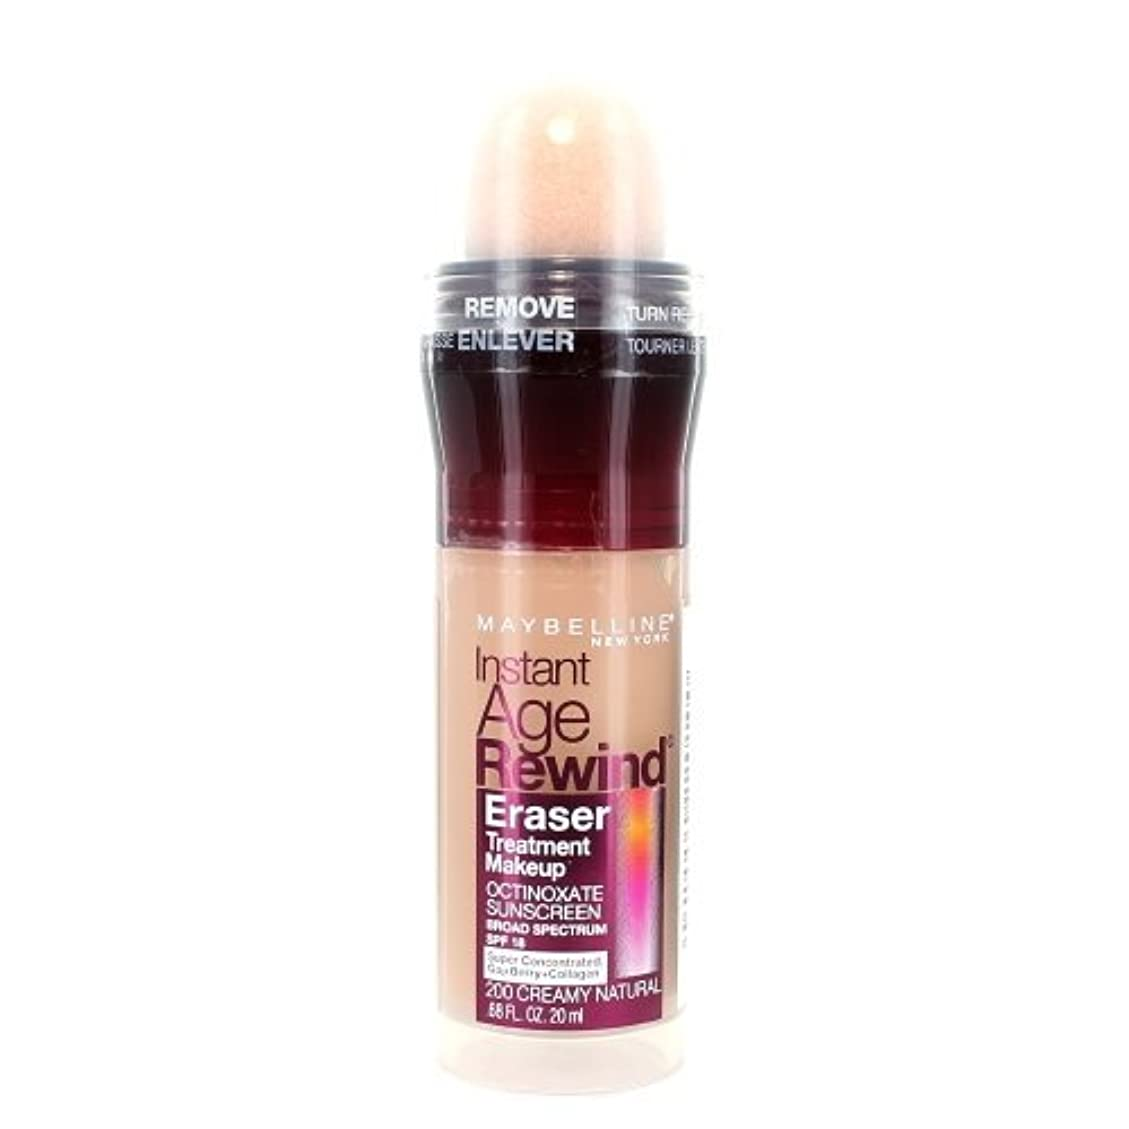 彼らは従順な硫黄(3 Pack) MAYBELLINE Instant Age Rewind Eraser Treatment Makeup Creamy Natural (並行輸入品)